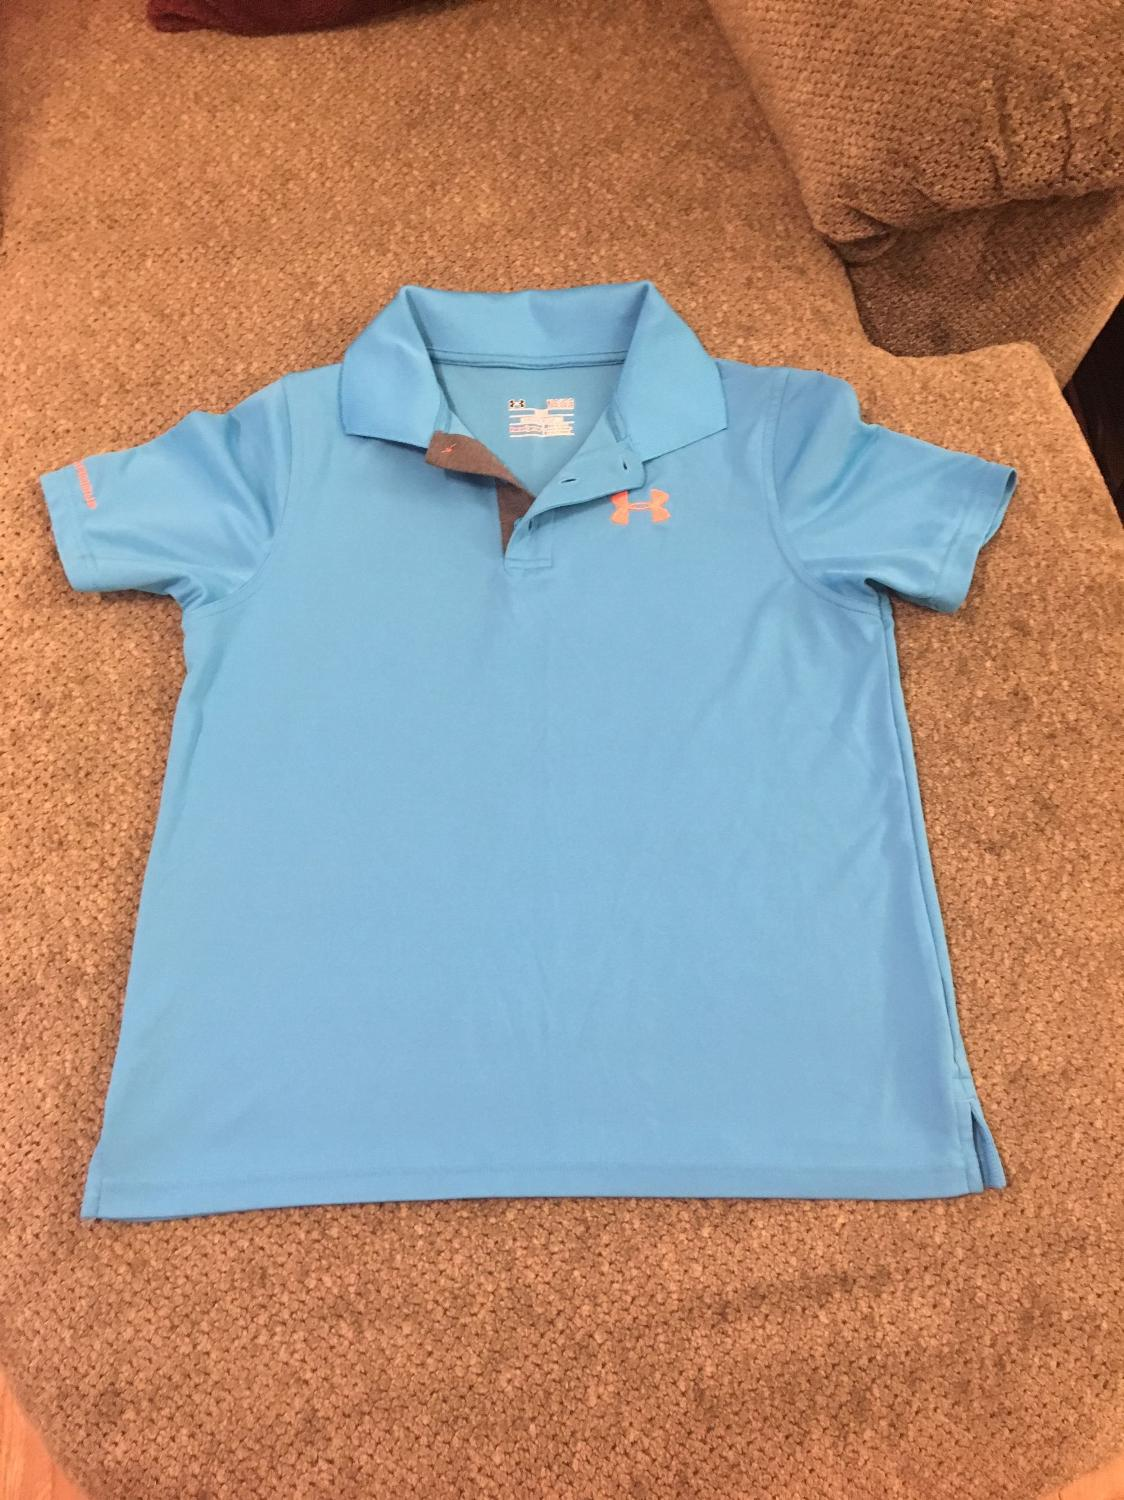 Find More Under Armor Heat Gear Loose Fit Polo Shirt Size Youth